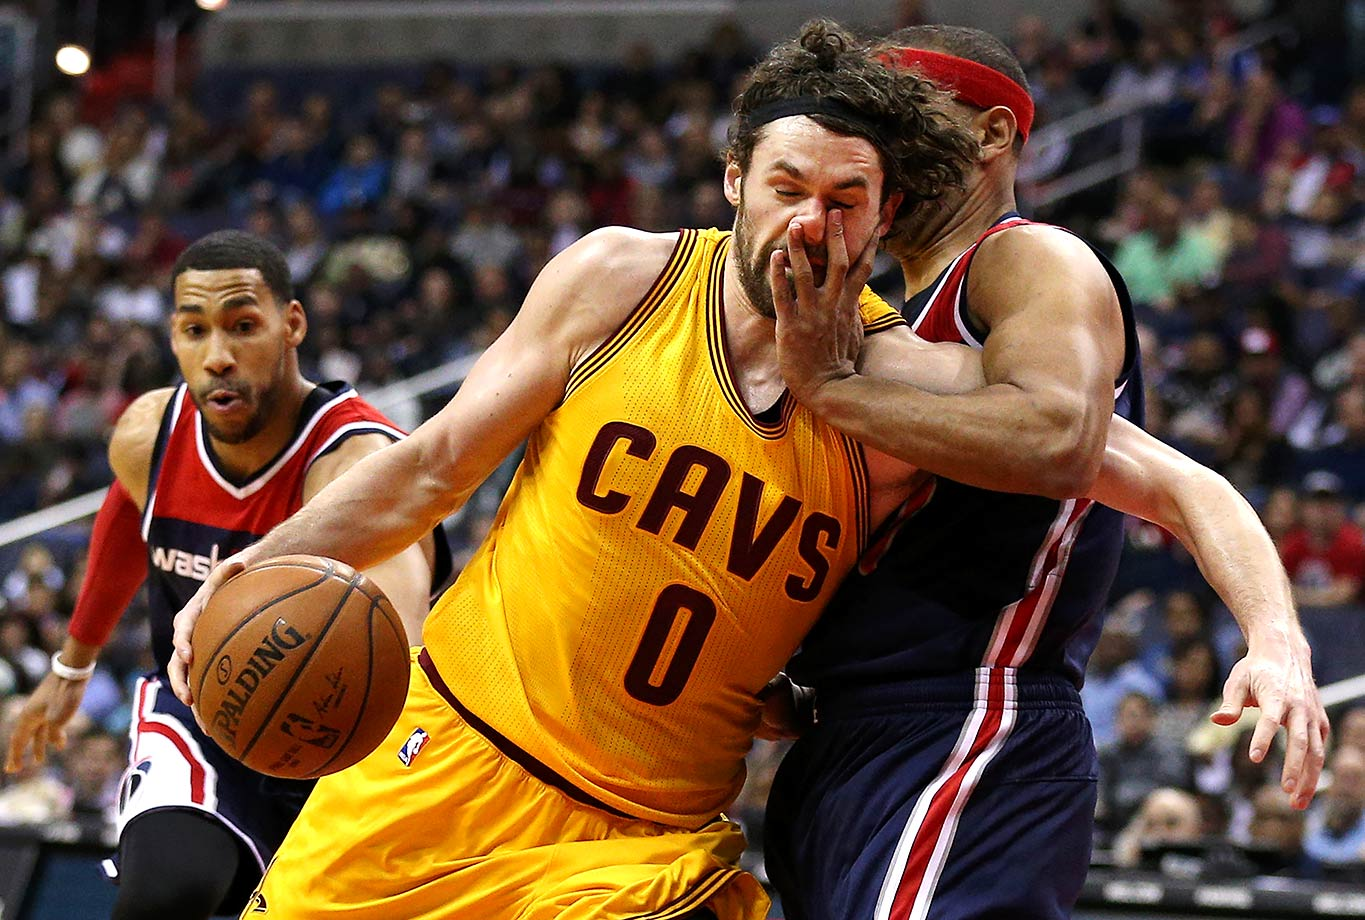 Kevin Love of the Cleveland Cavaliers is fouled by Jared Dudley of the Washington Wizards during the first half of a game in Washington, D.C.